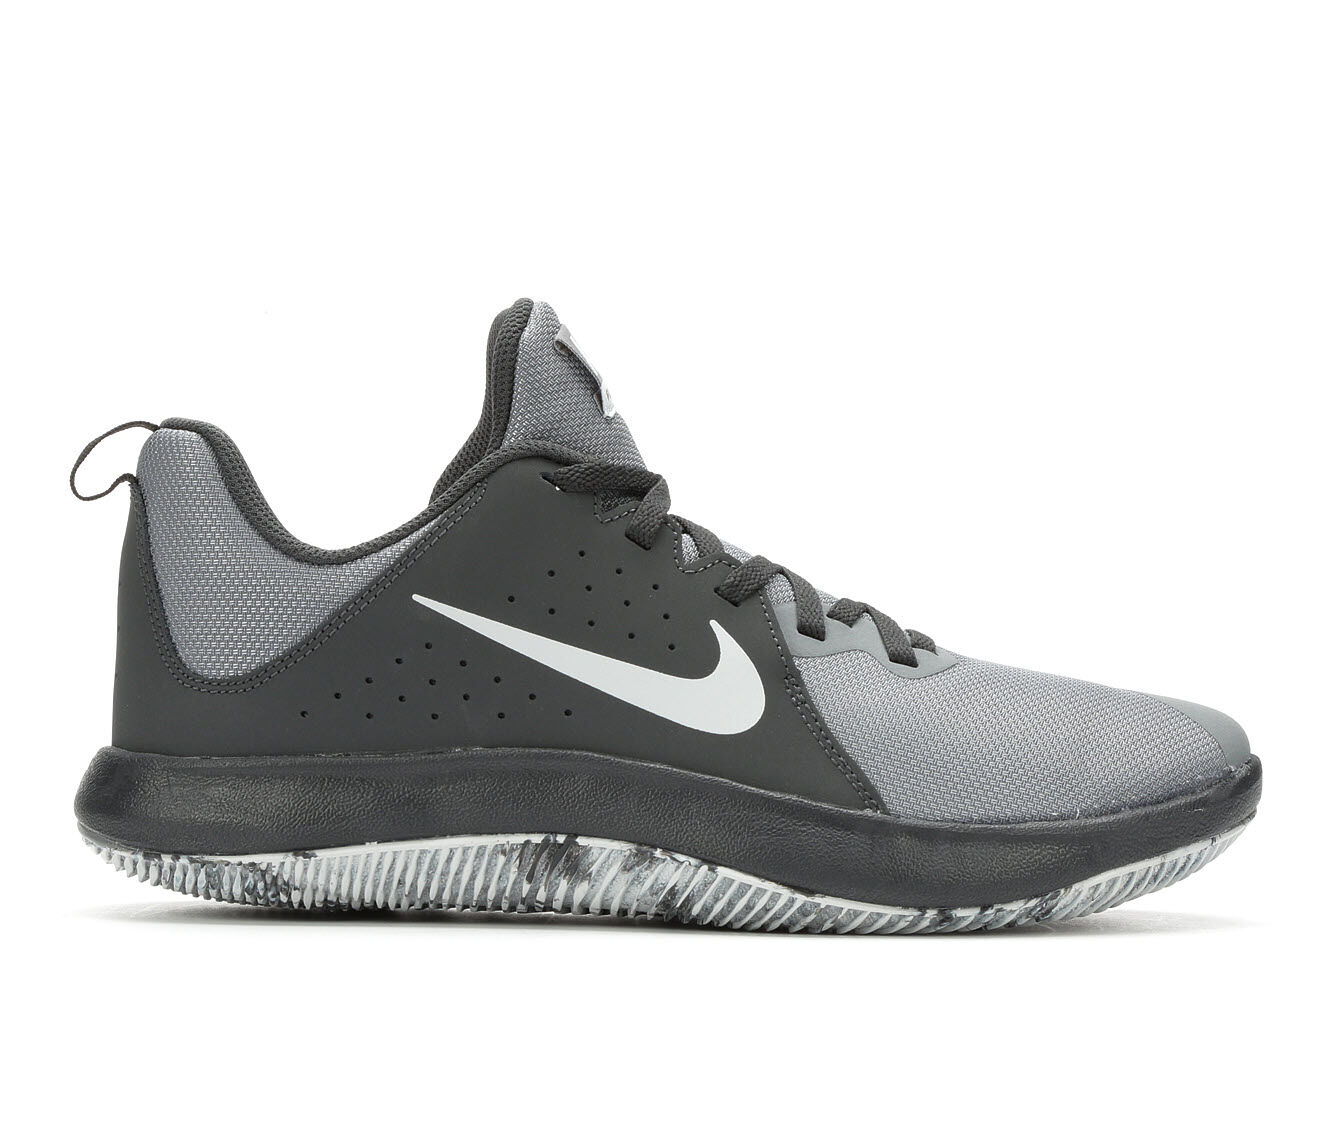 Men's Nike Fly By Low NBK Basketball Shoes Grey/Blk/Wt 003